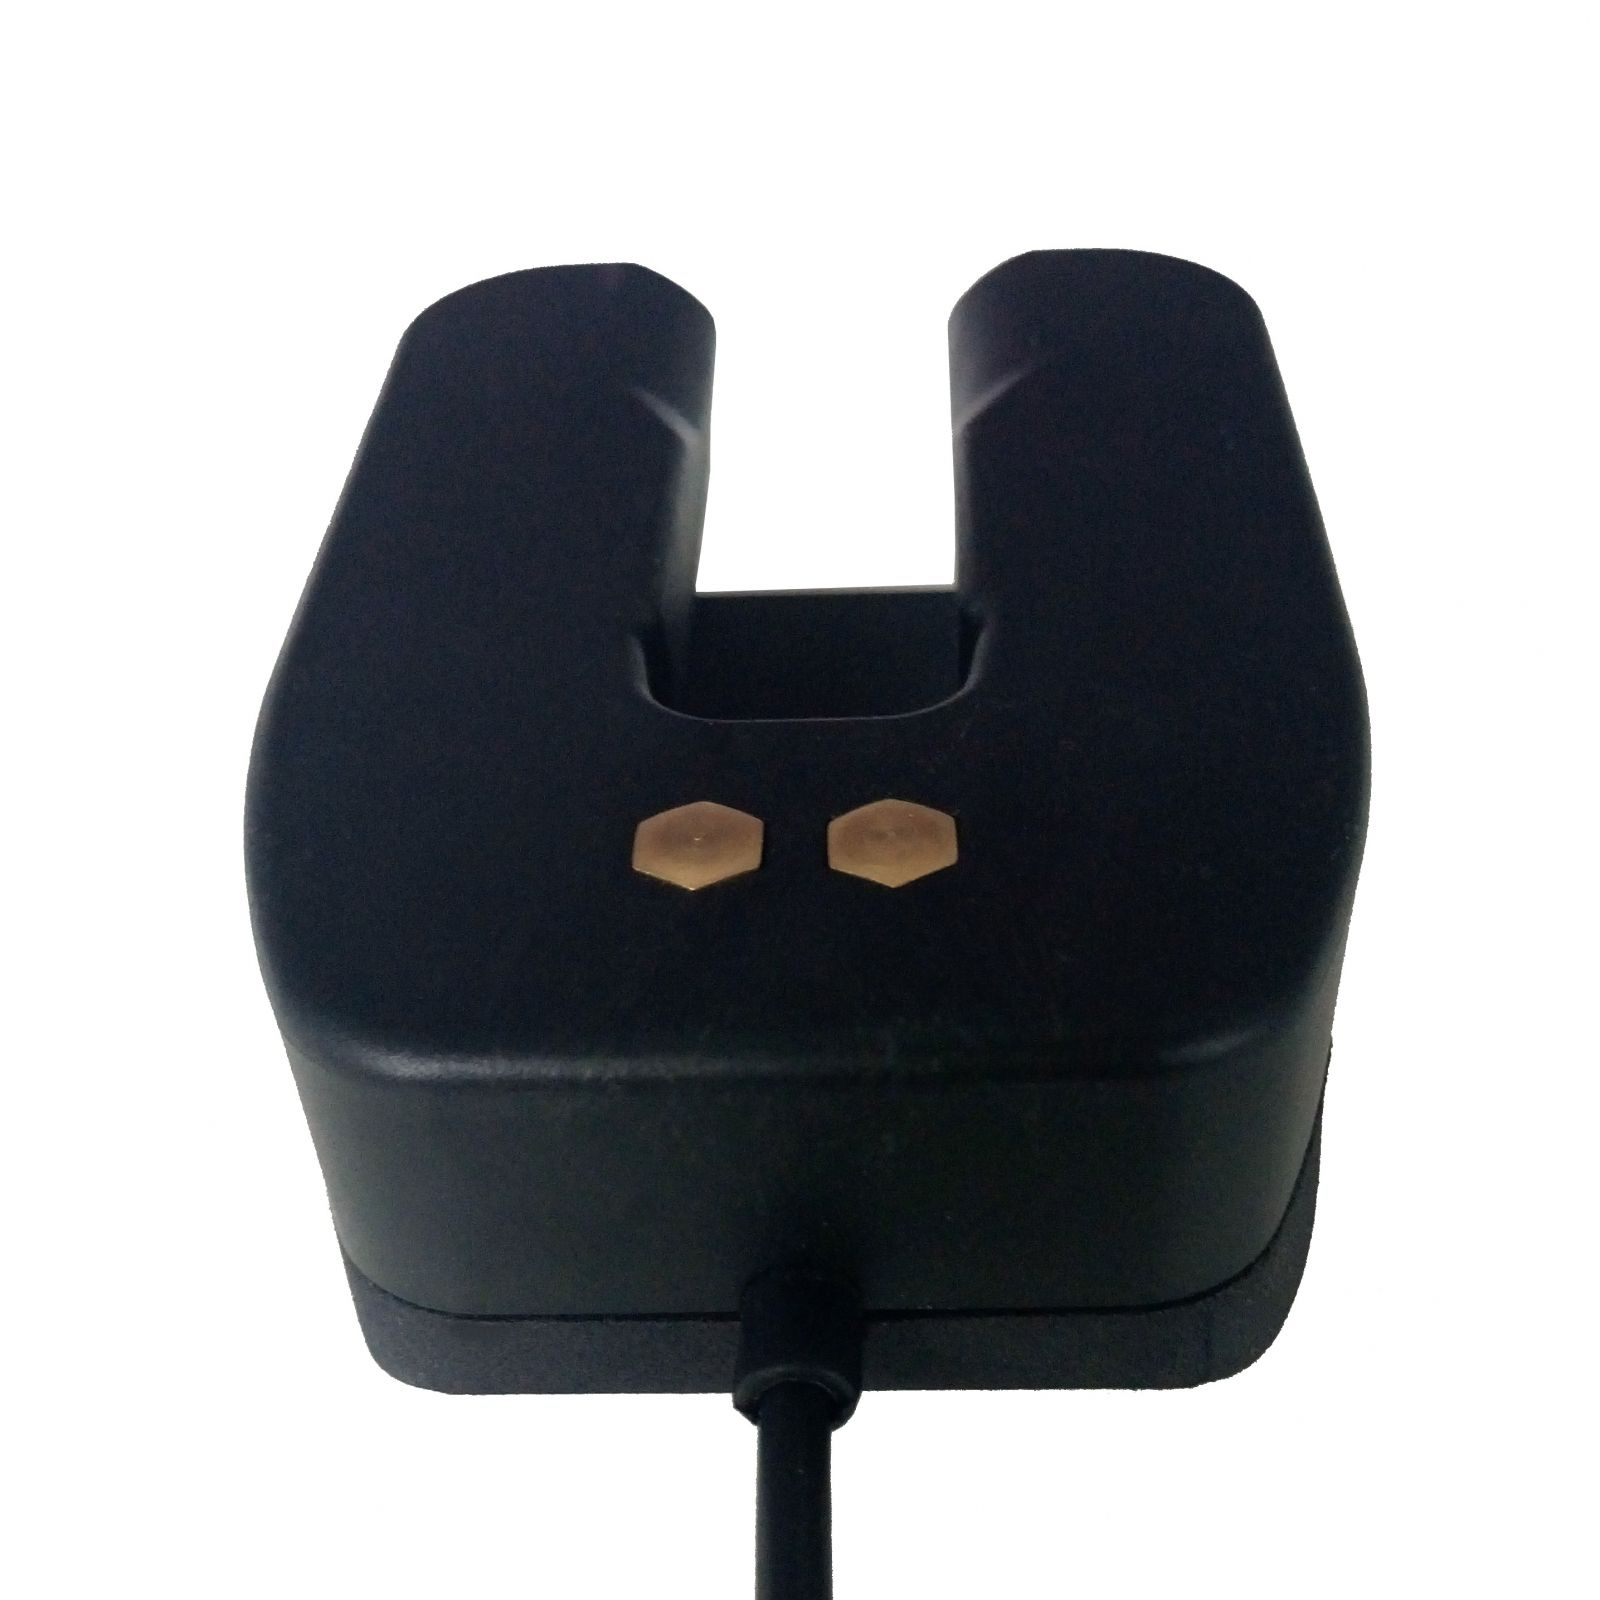 Aina Vehicle Charger